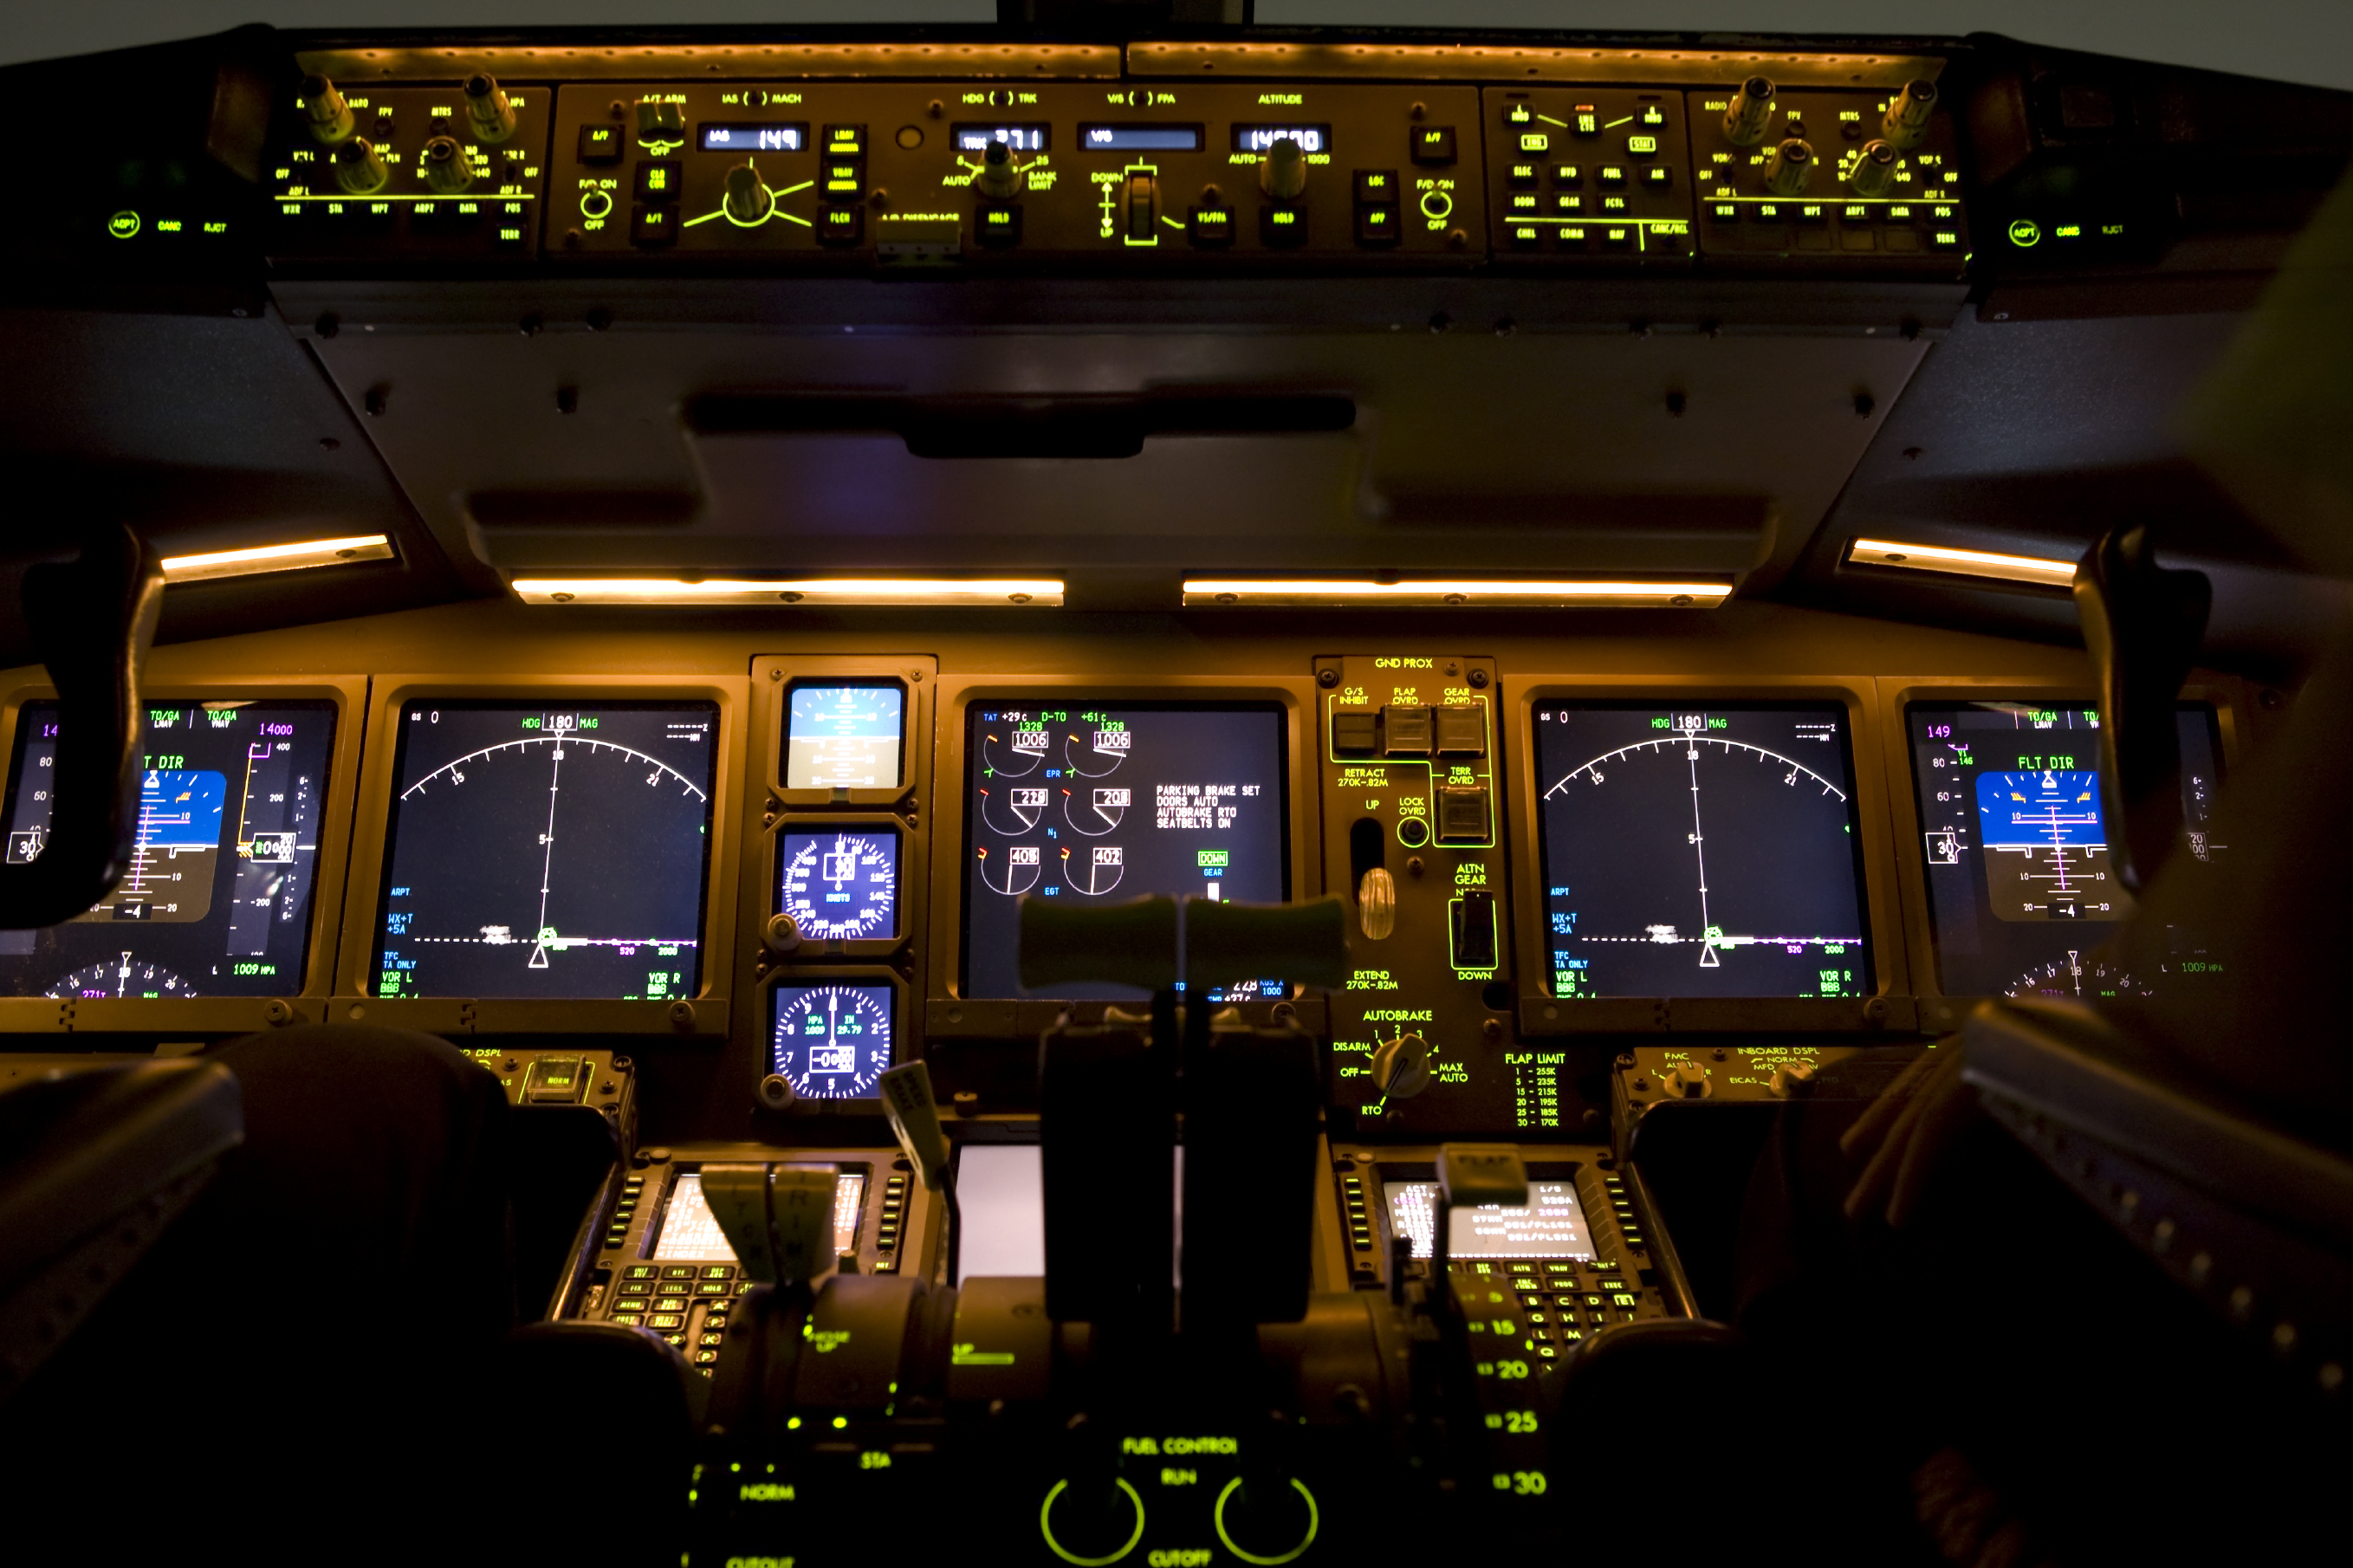 The muted lights of an airline cockpit at night.